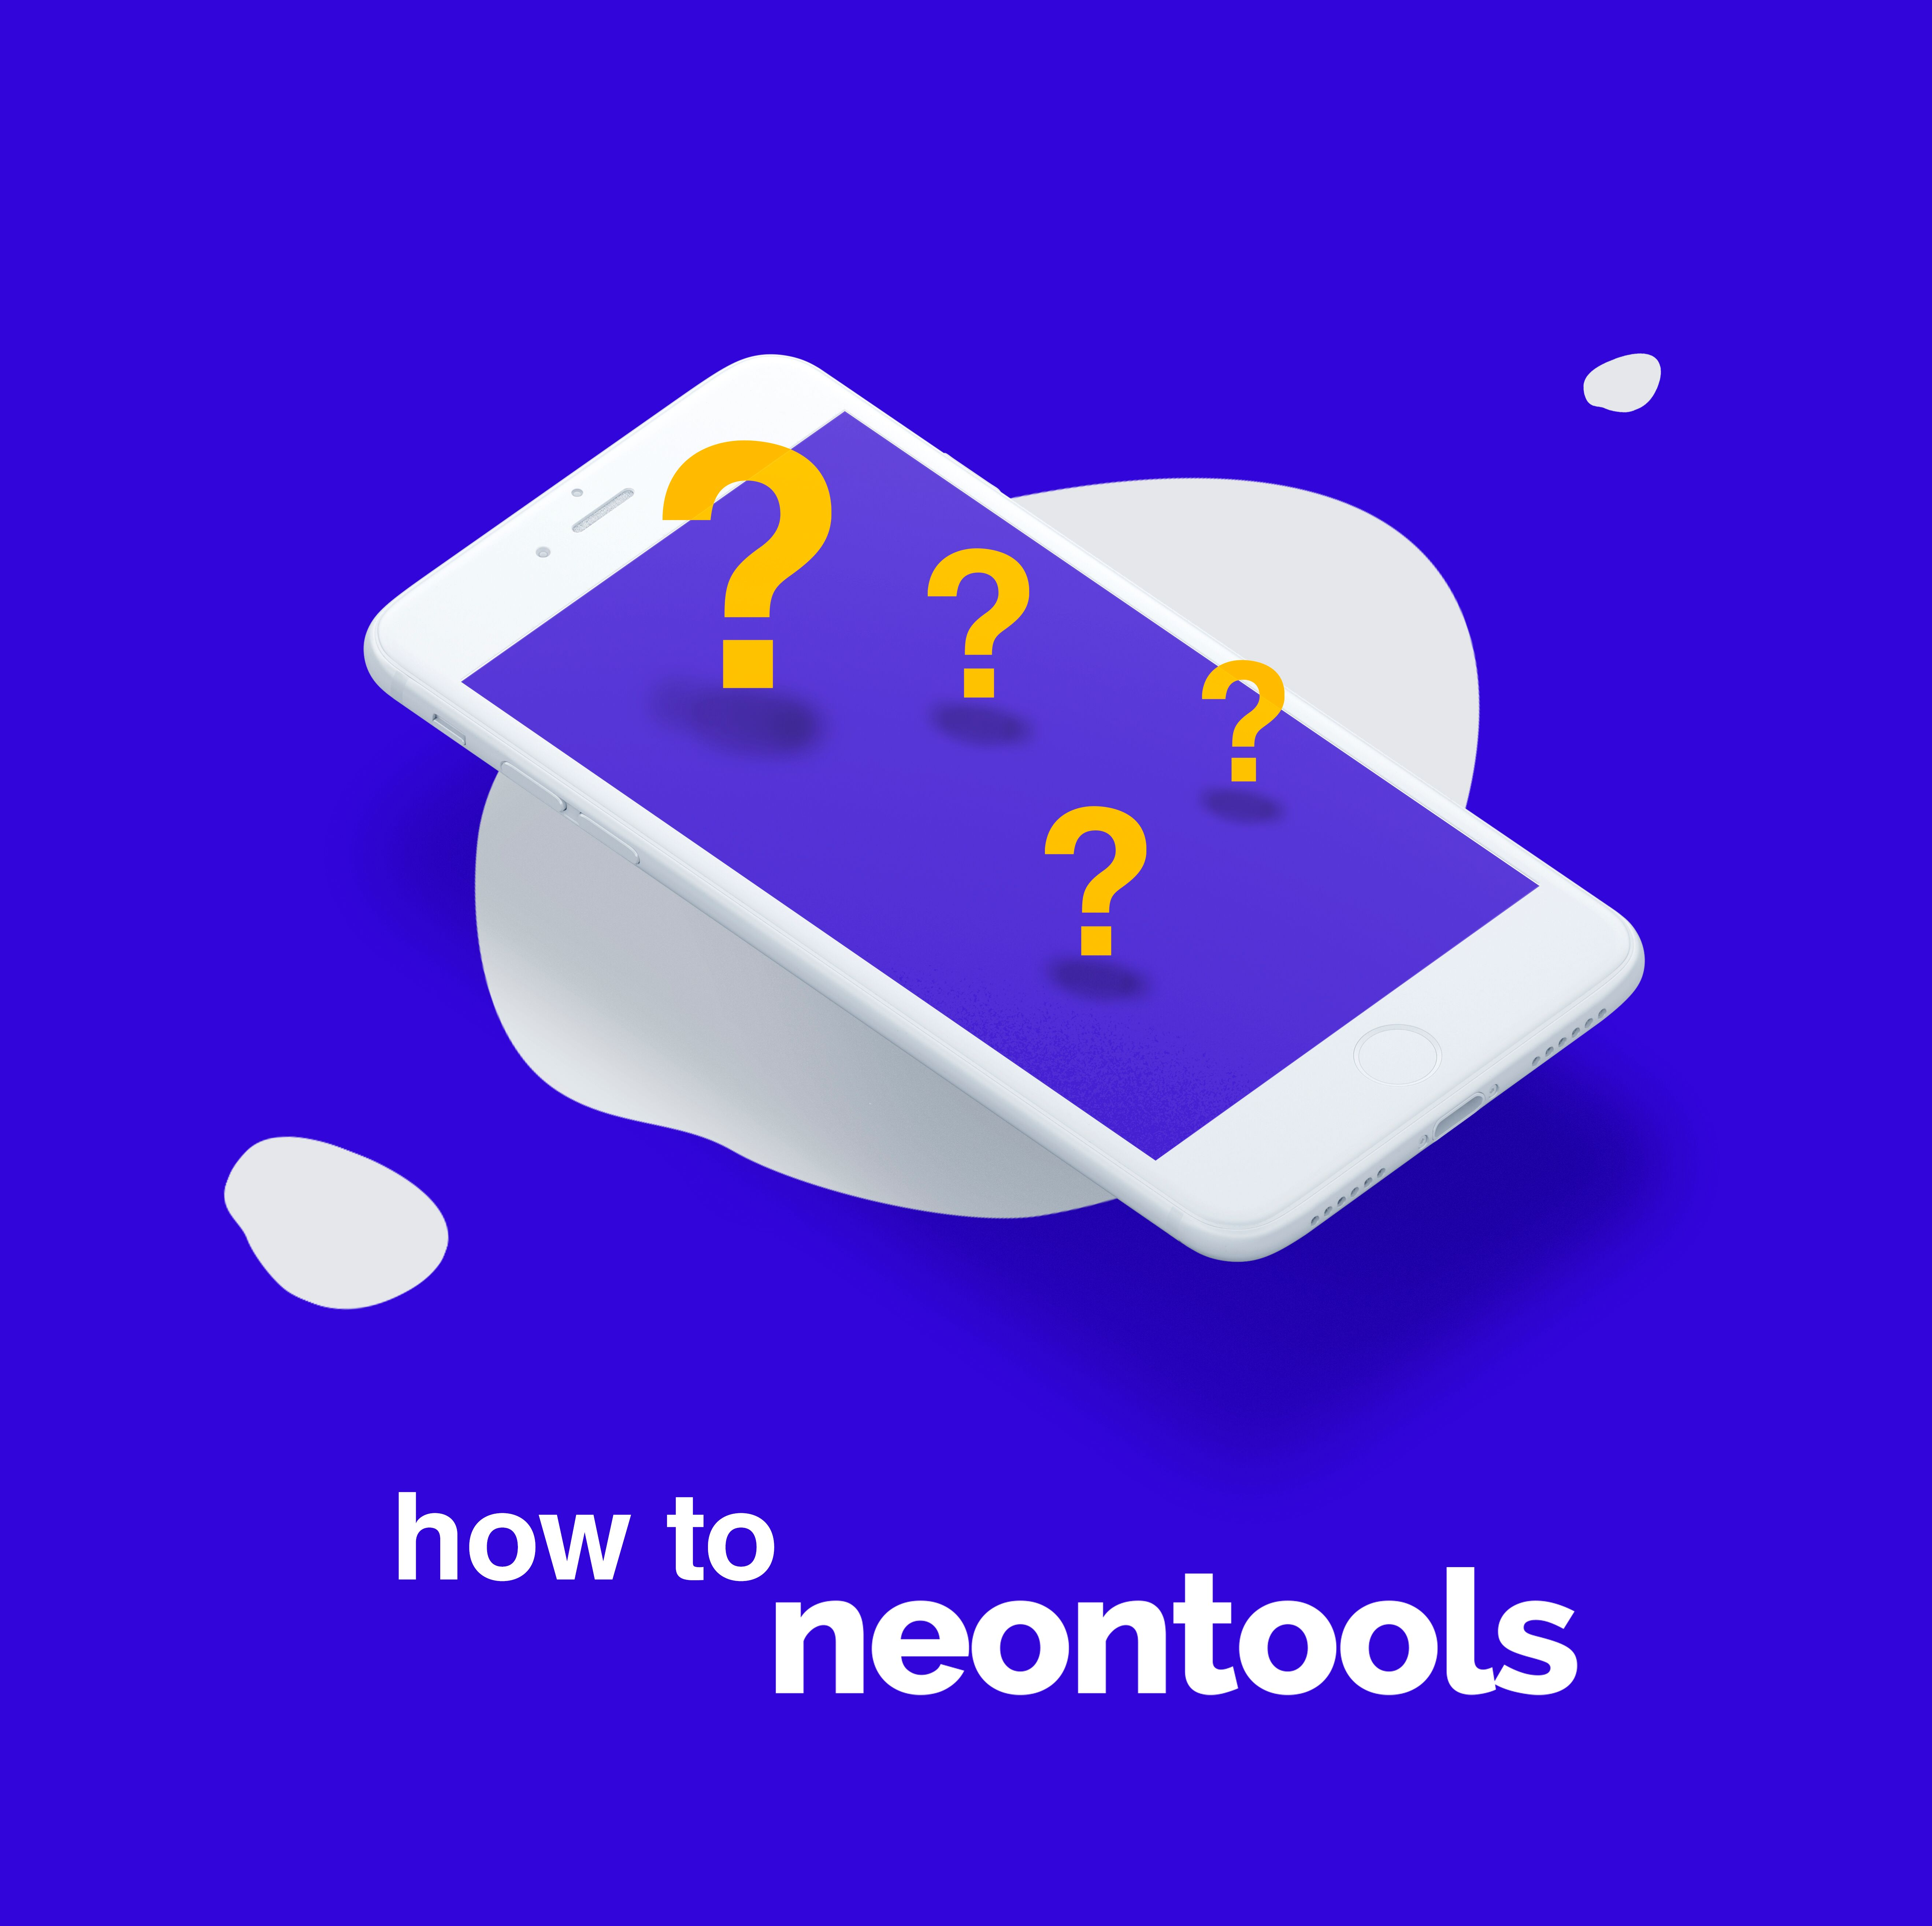 How to Neontools